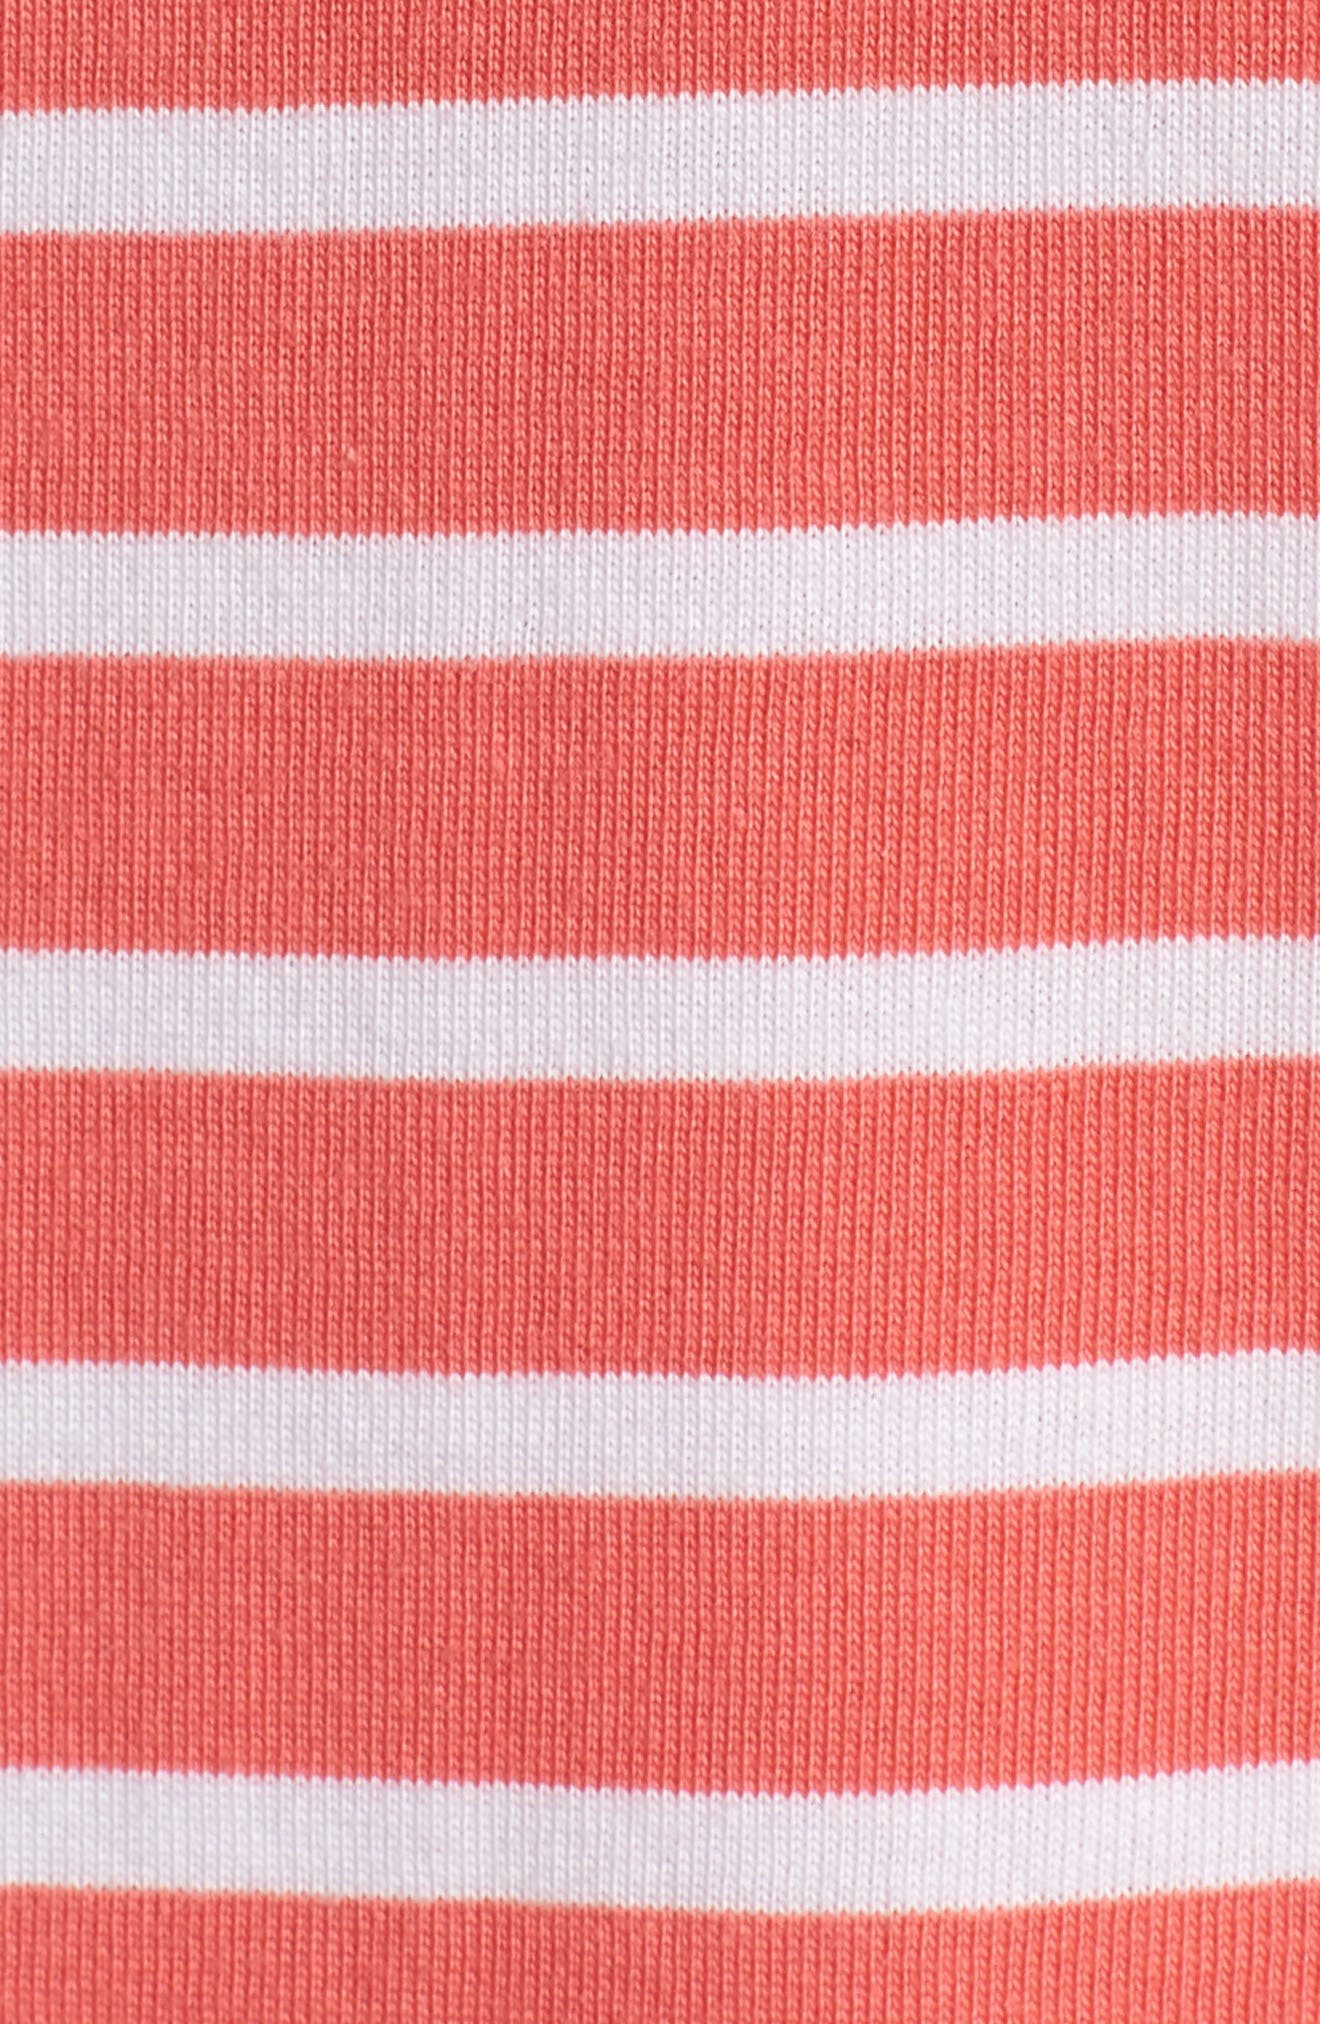 Stripe Cotton Knit Shift Dress,                             Alternate thumbnail 5, color,                             Coral- White Stripe